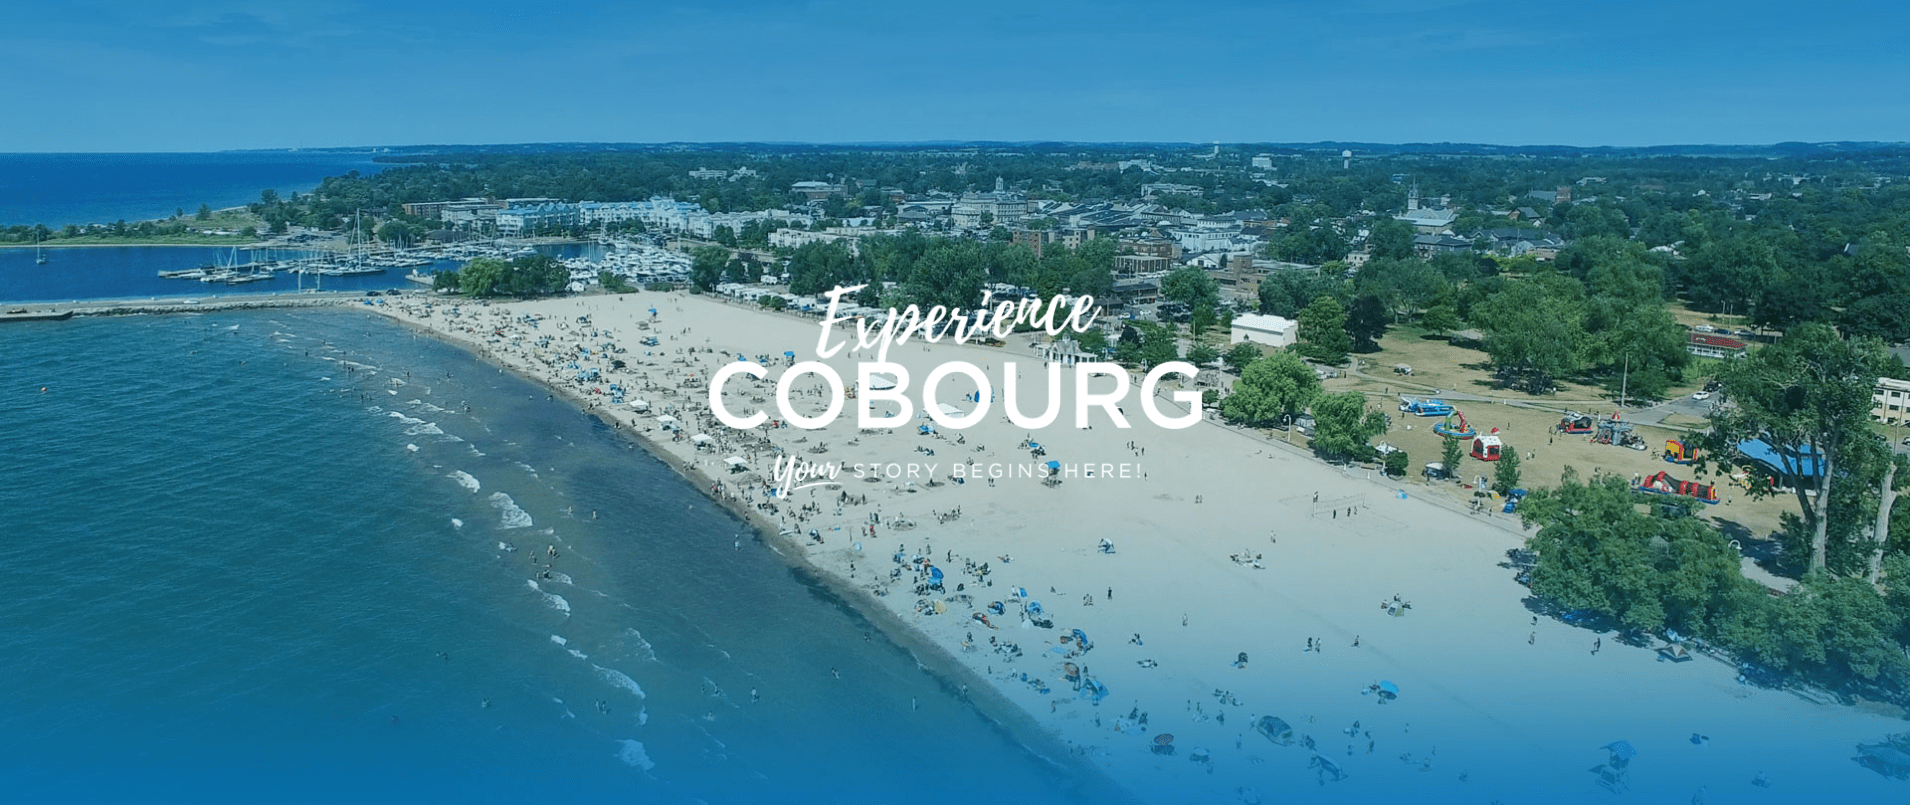 Experience Cobourg | Festivals, Events, Attractions And More!